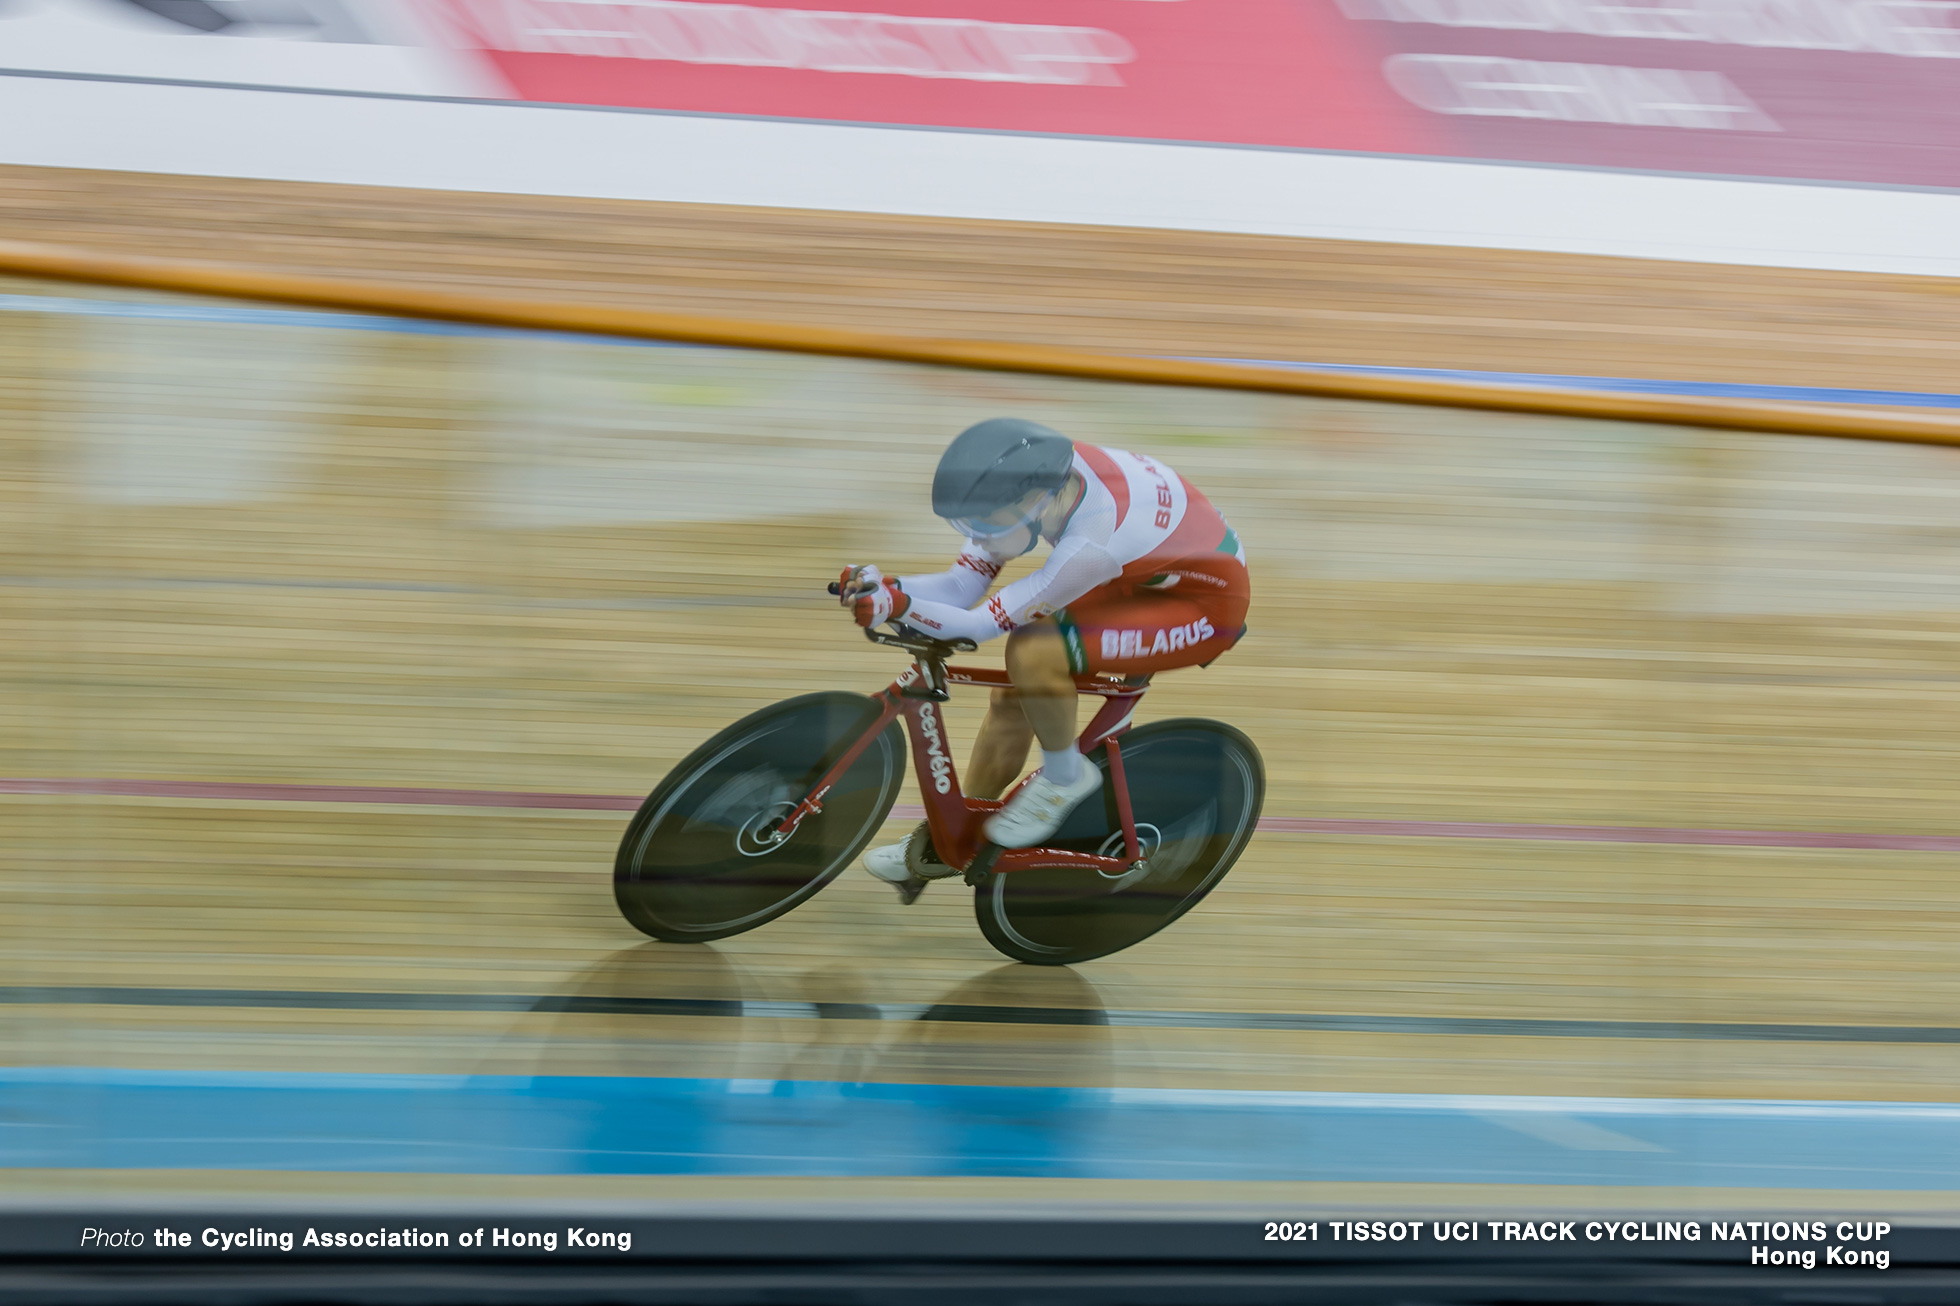 Women's Individual Pursuit, TISSOT UCI TRACK CYCLING NATIONS CUP - HONG KONG